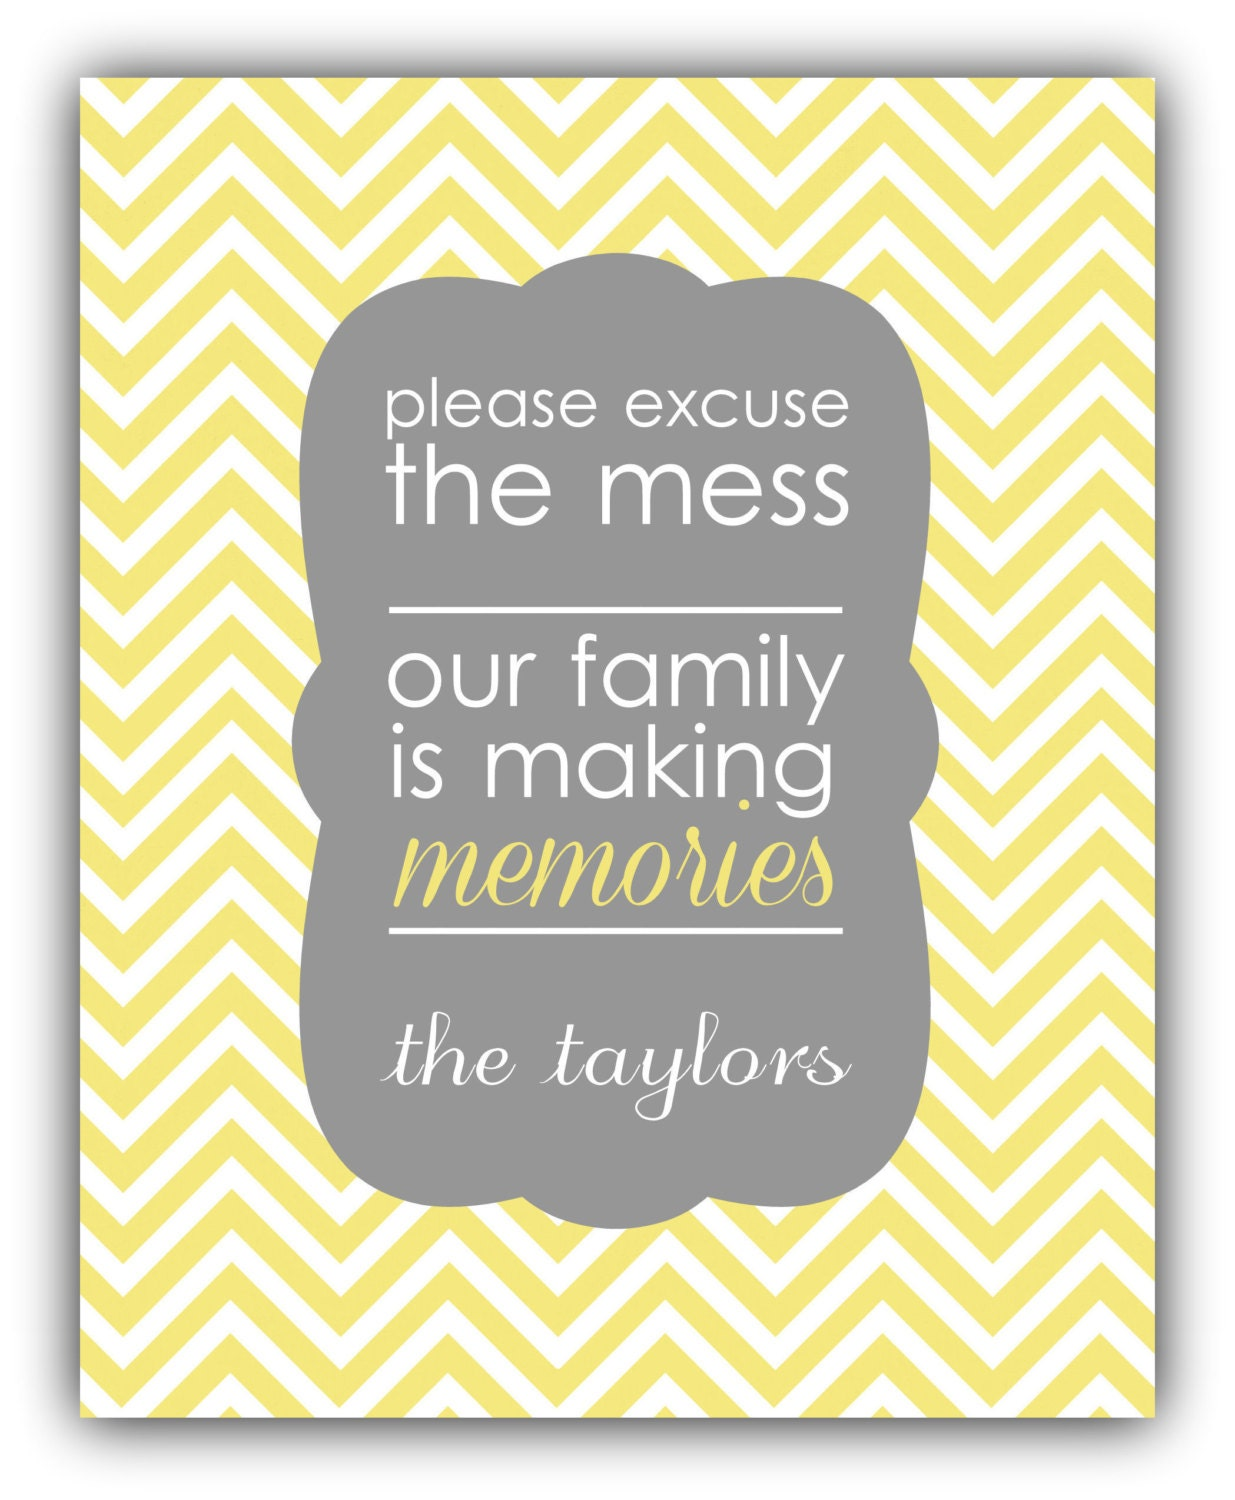 Please excuse the mess family Custom Wall Art -Personalized Family ...